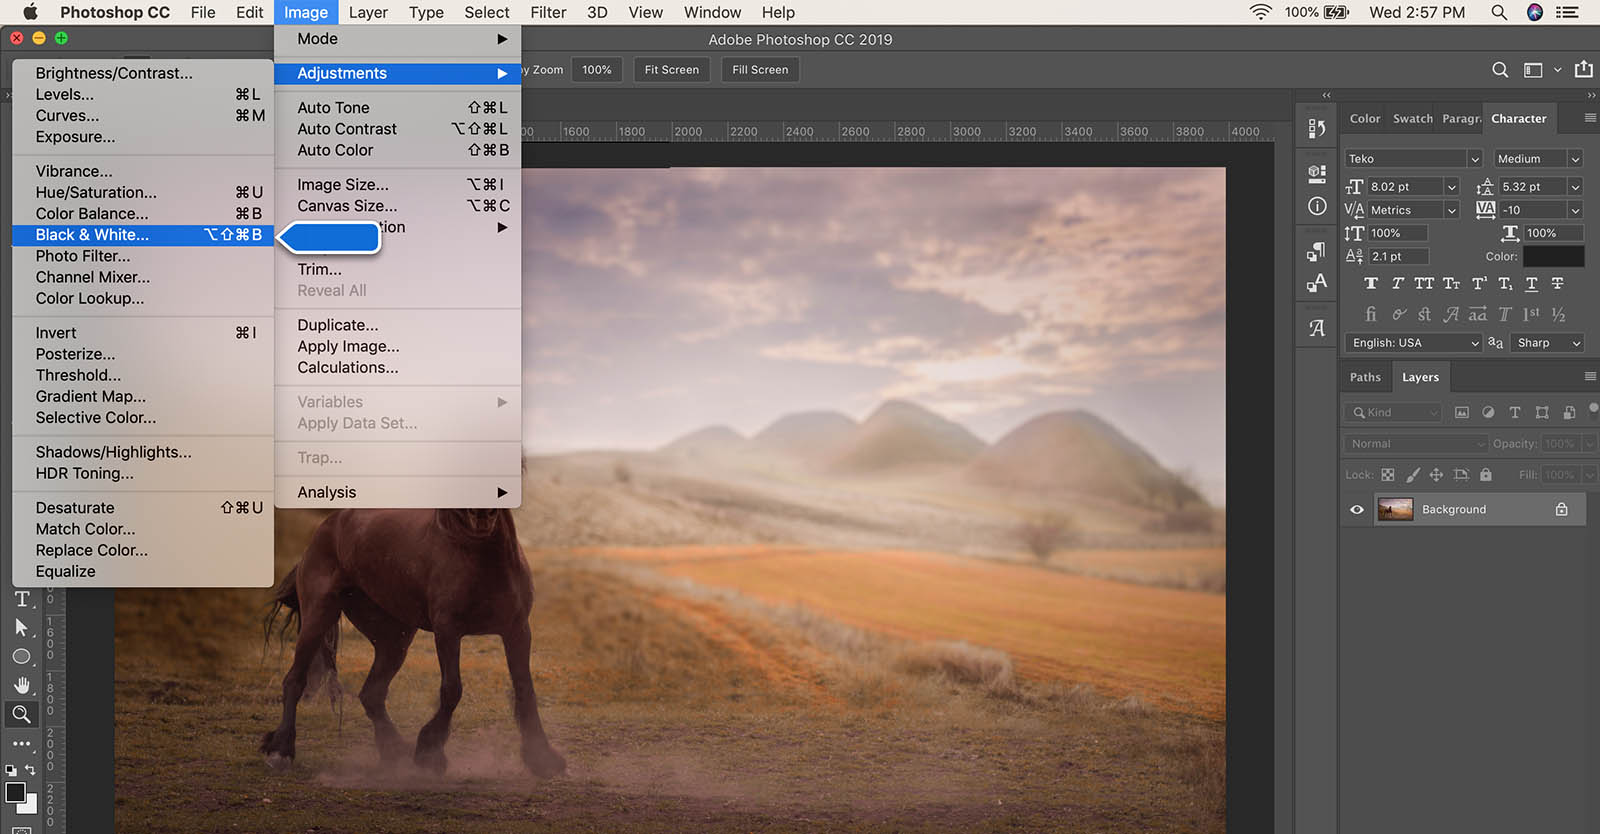 How to convert image to black and white in Photoshop